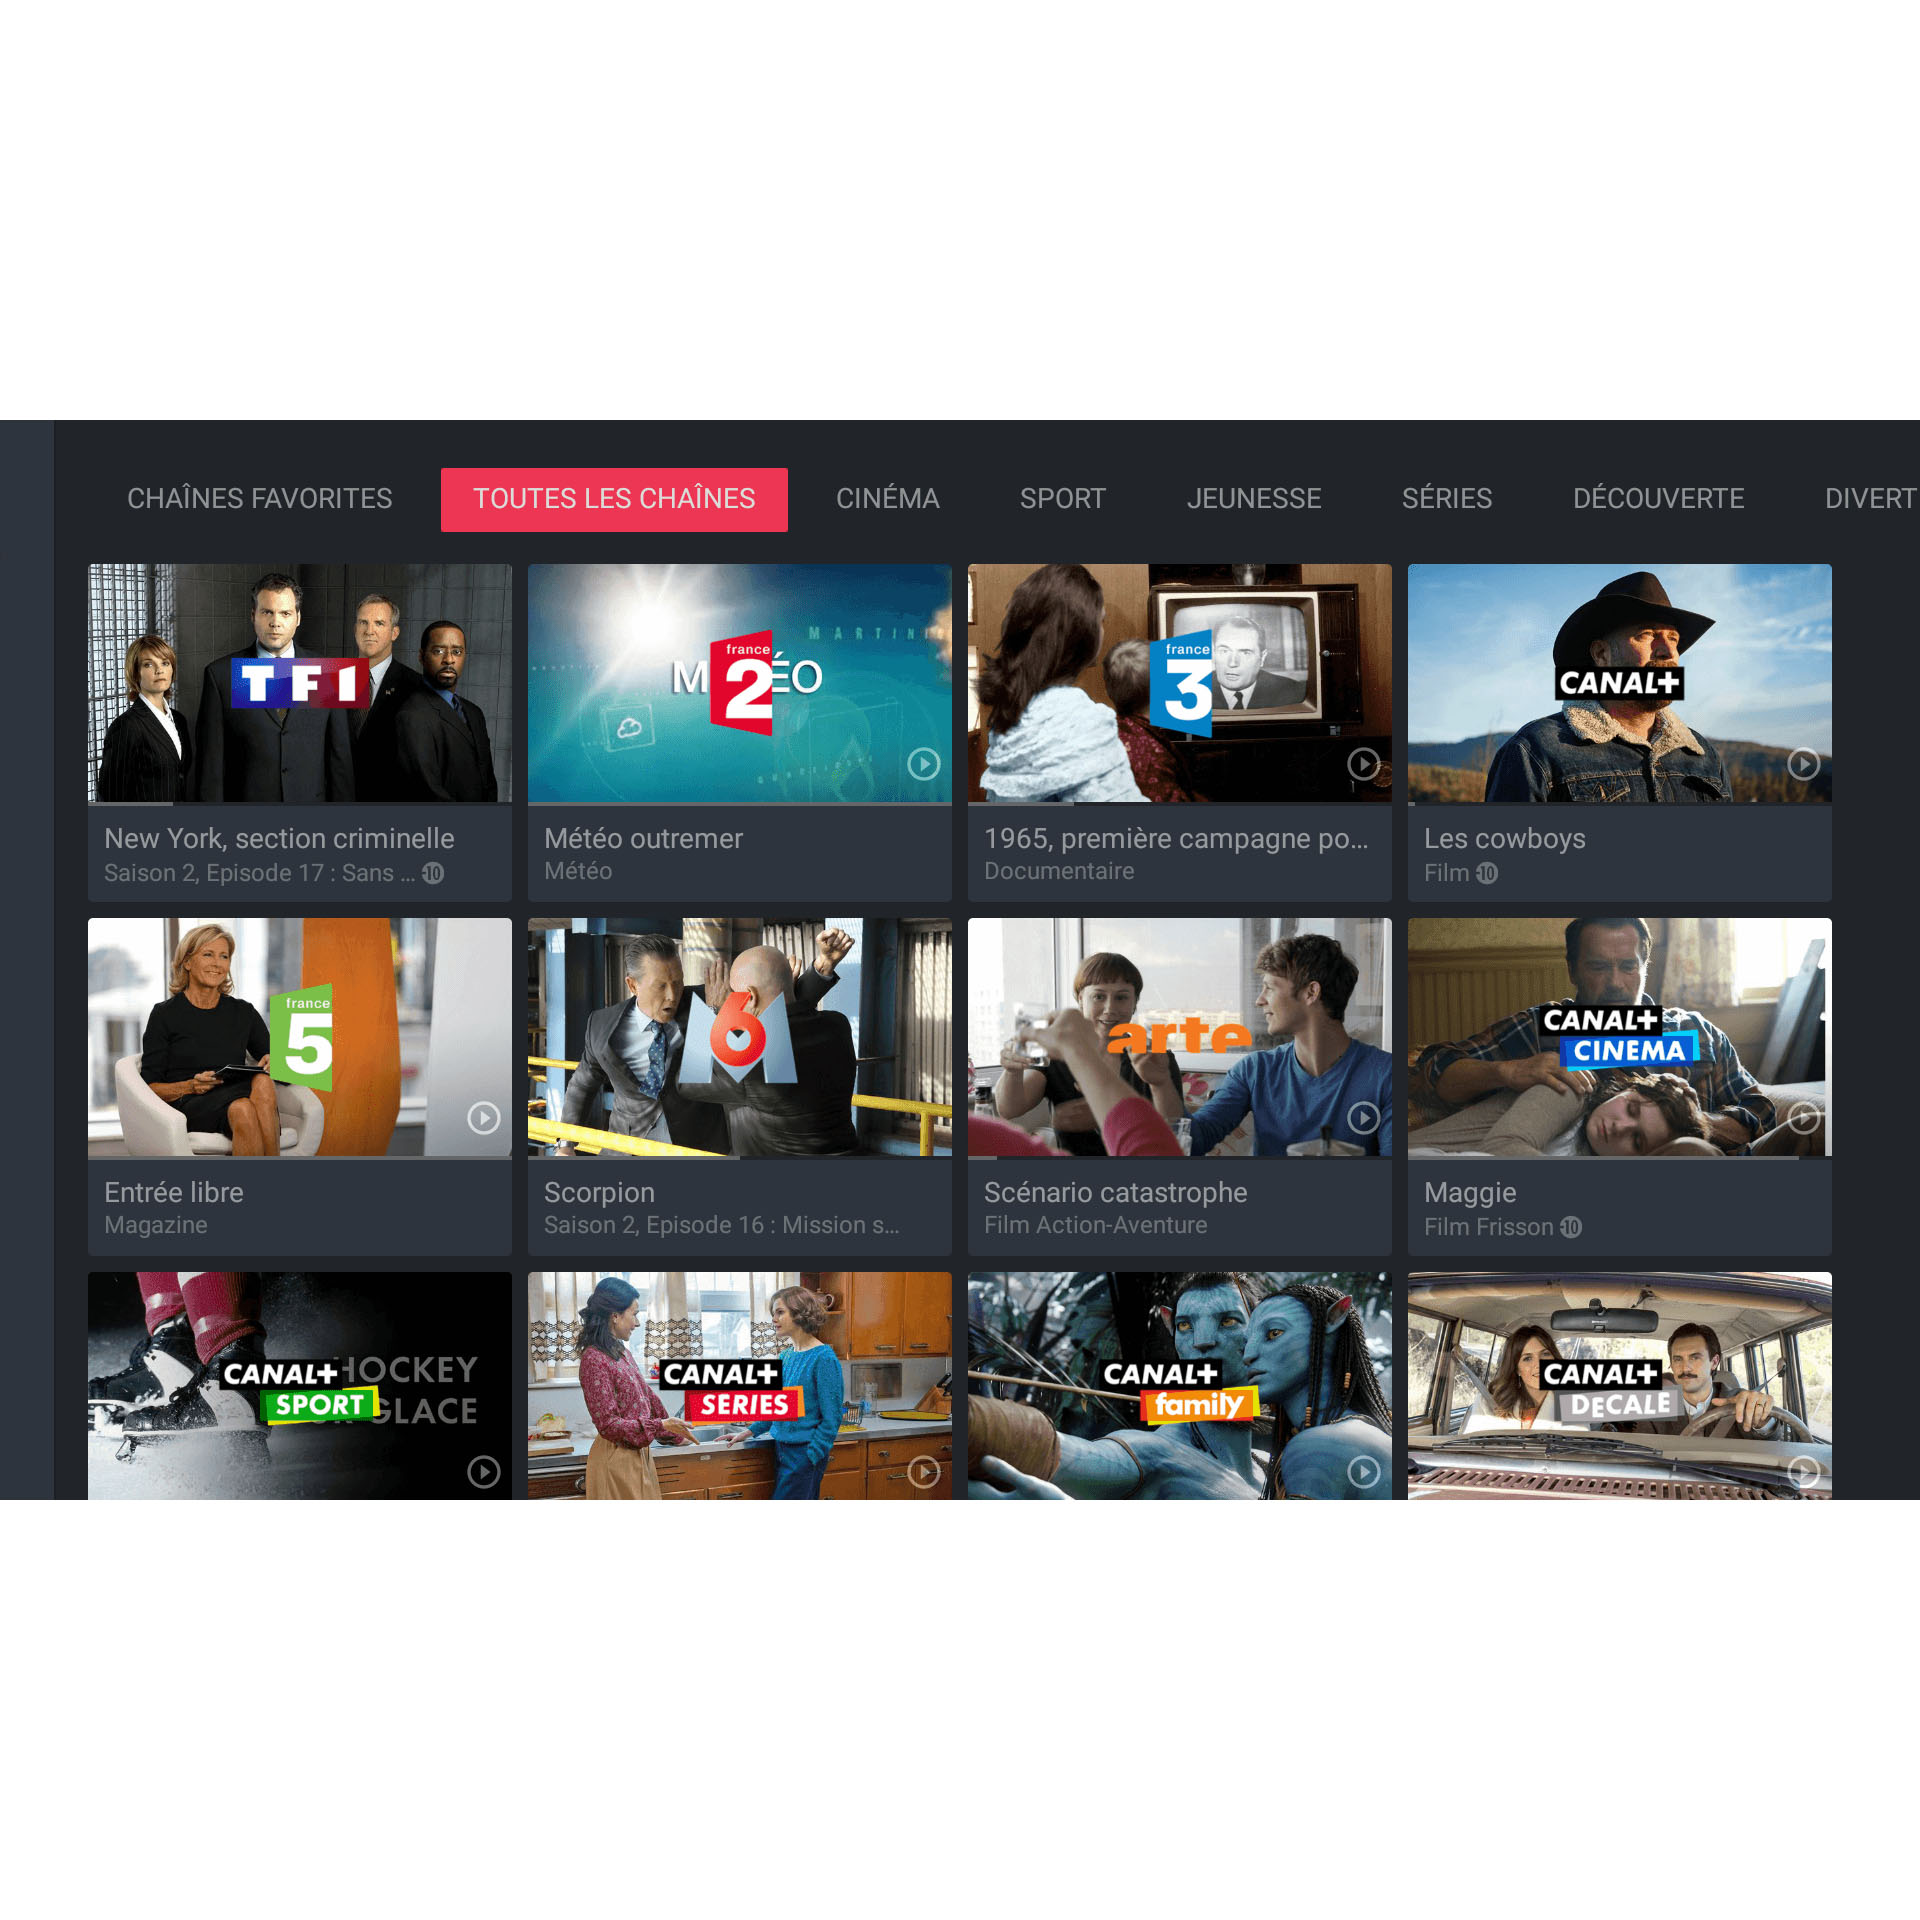 HD World IPTV With +9200 Live TV ,+ 5500 Video-On-Demand And Smart EPG TV Guide